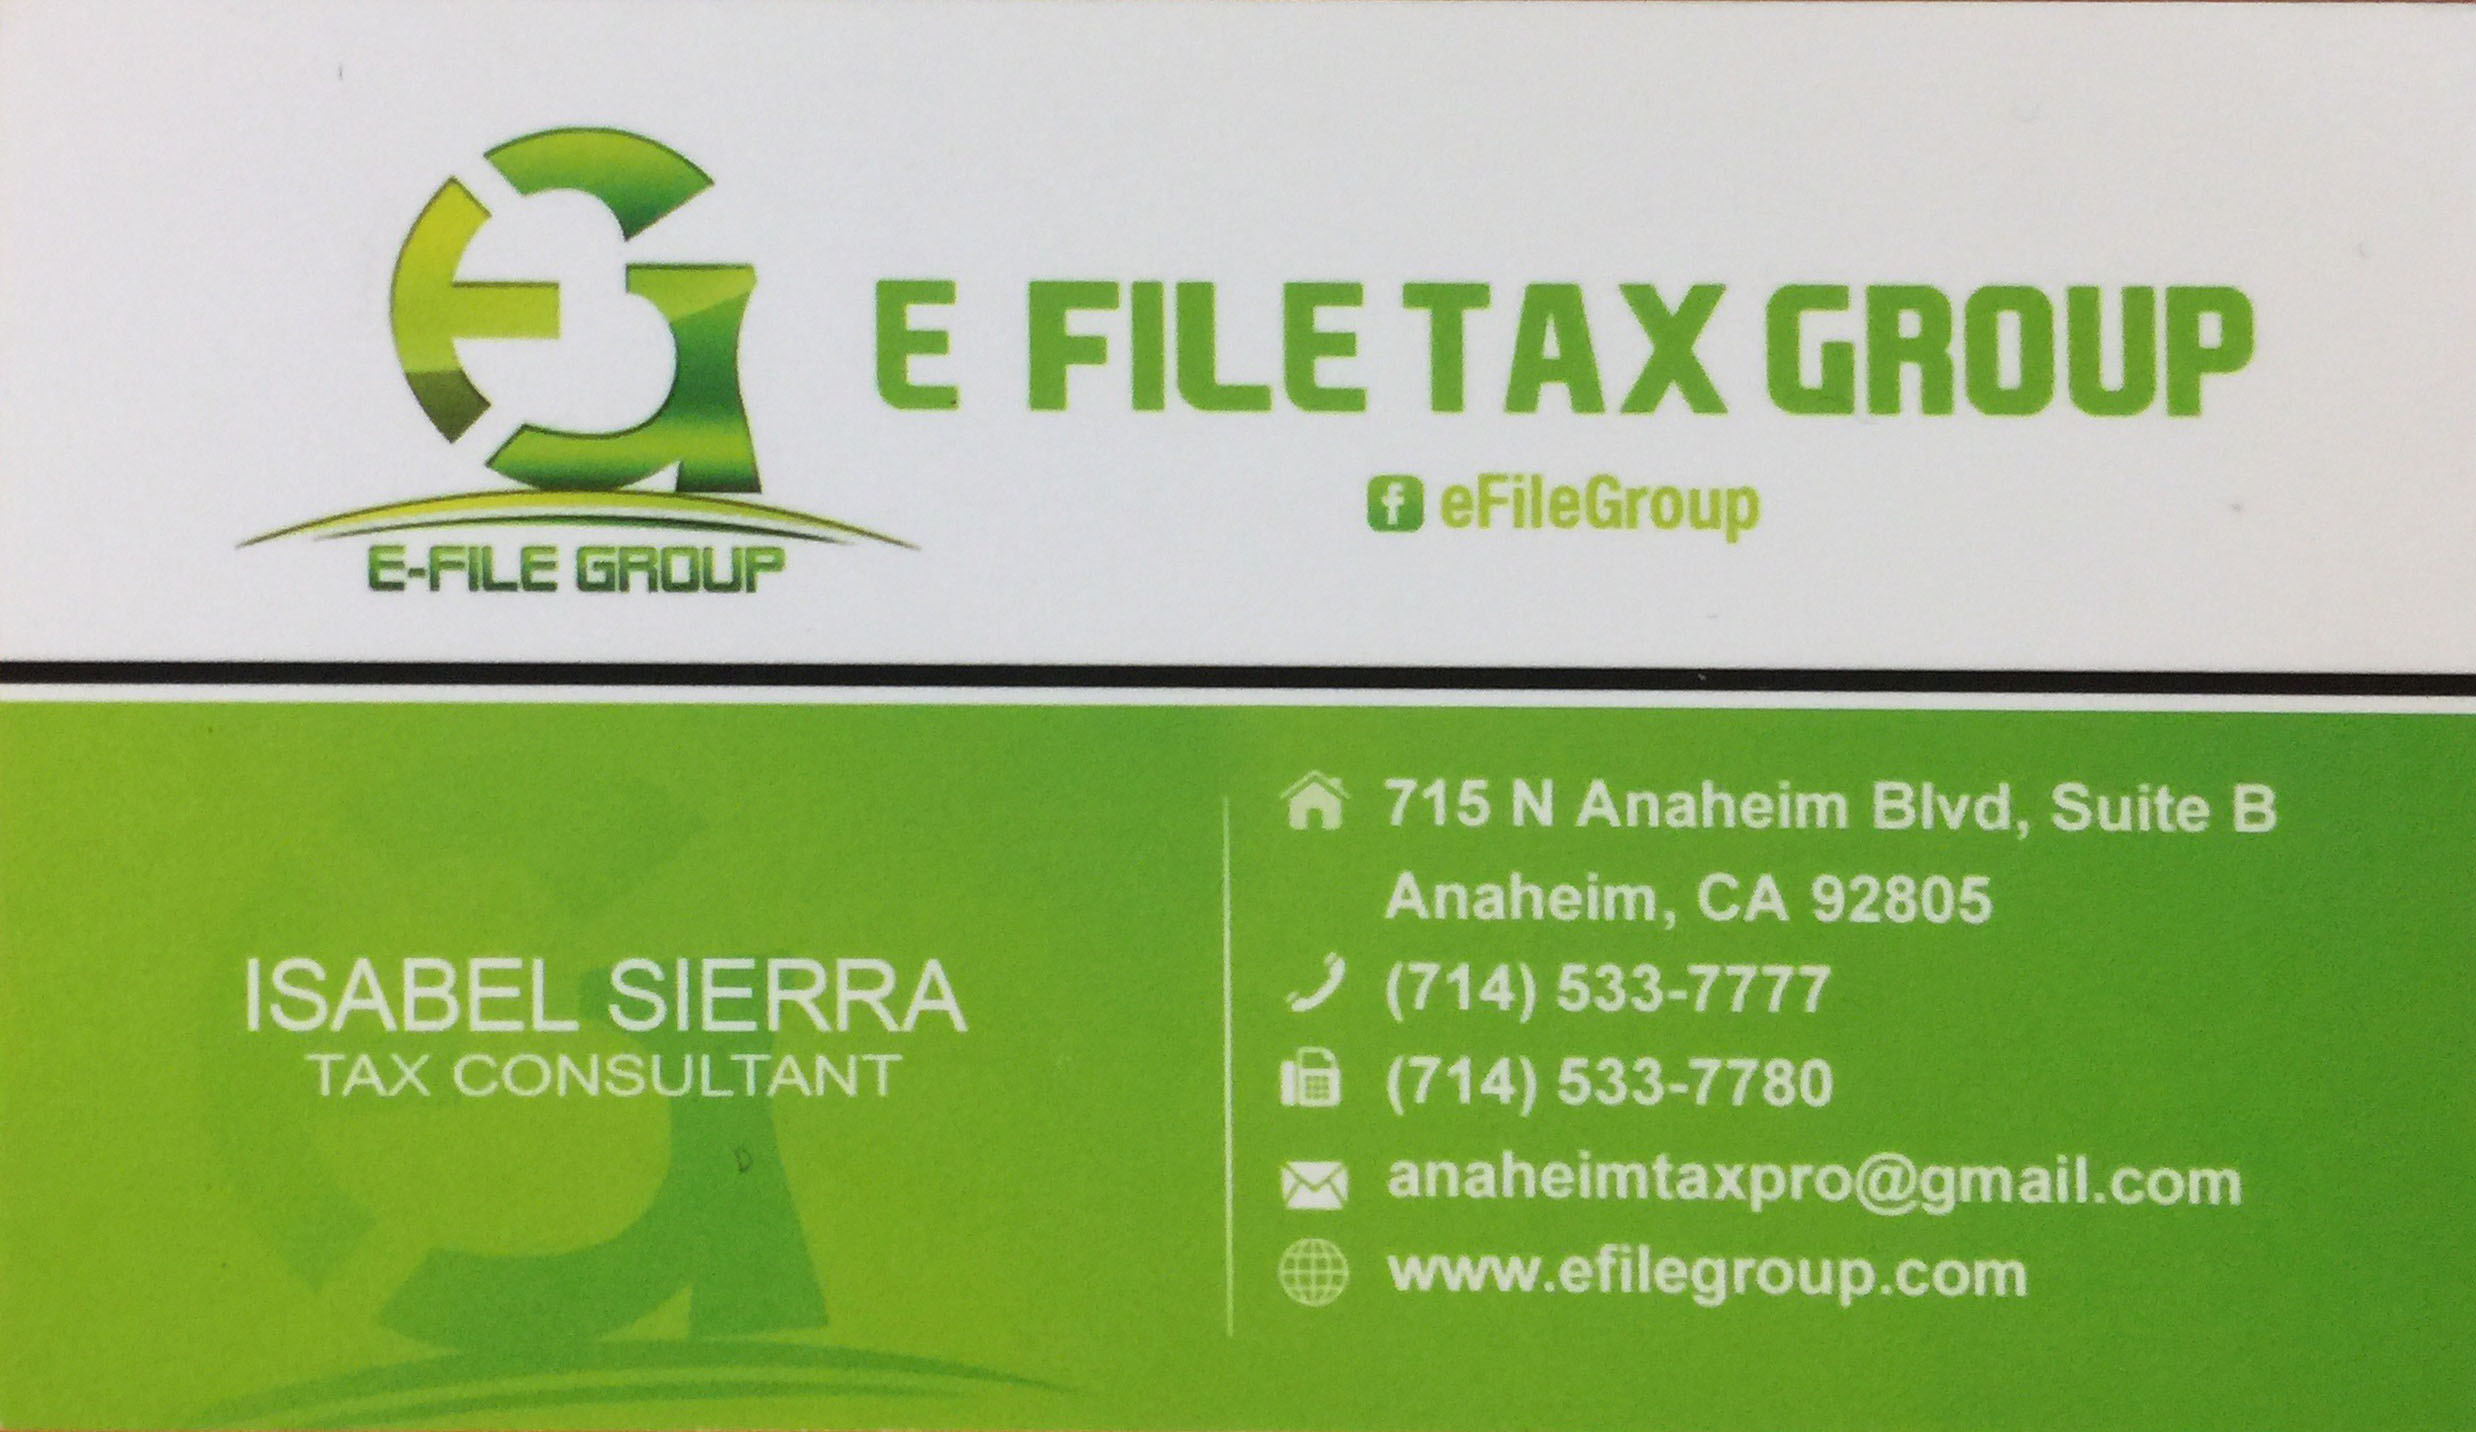 E File Group